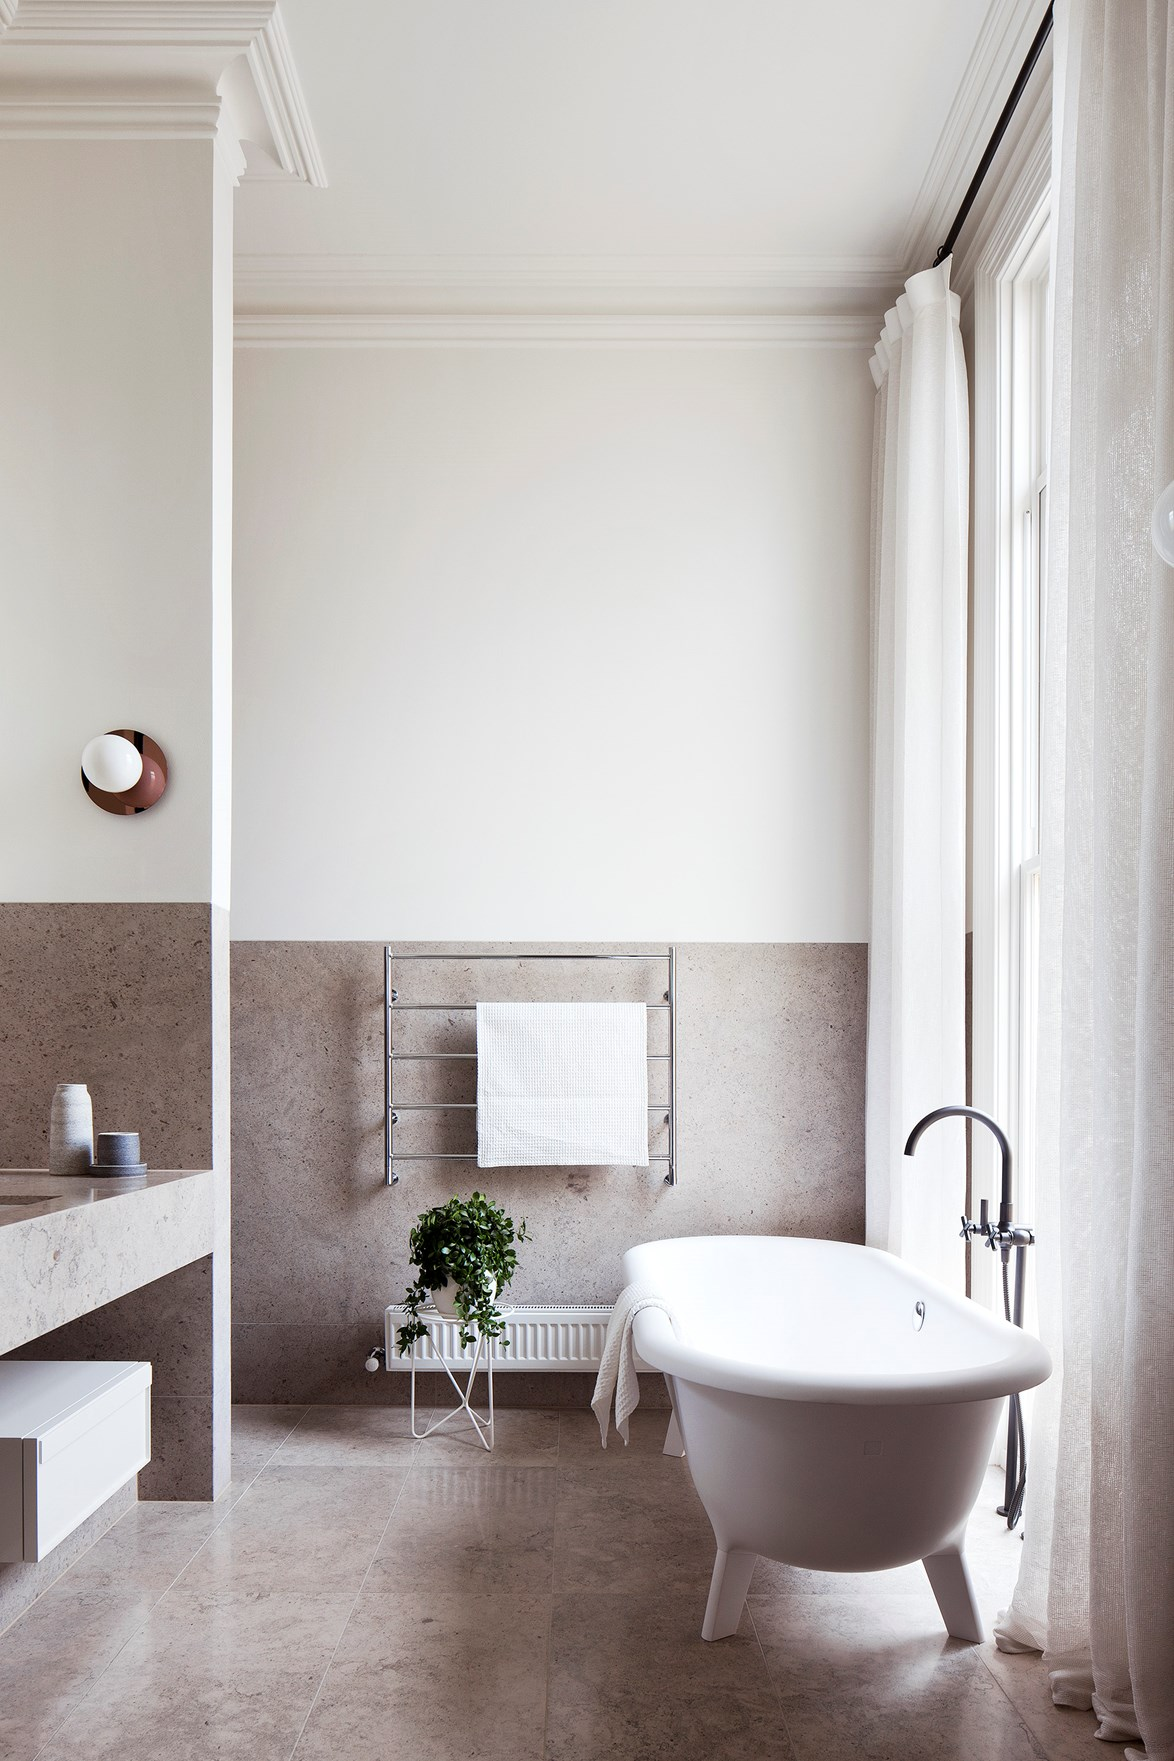 "A minimalist bathroom will never have everyday knick-knacks on display. Just like the bathroom in this [renovated Victorian terrace](https://www.homestolove.com.au/south-yarra-terrace-by-hecker-guthrie-4380|target=""_blank"") in Melbourne, which instead features stylish pottery ornaments, a modern free-standing tub and an [indoor plant](https://www.homestolove.com.au/popular-indoor-plants-2018-6496